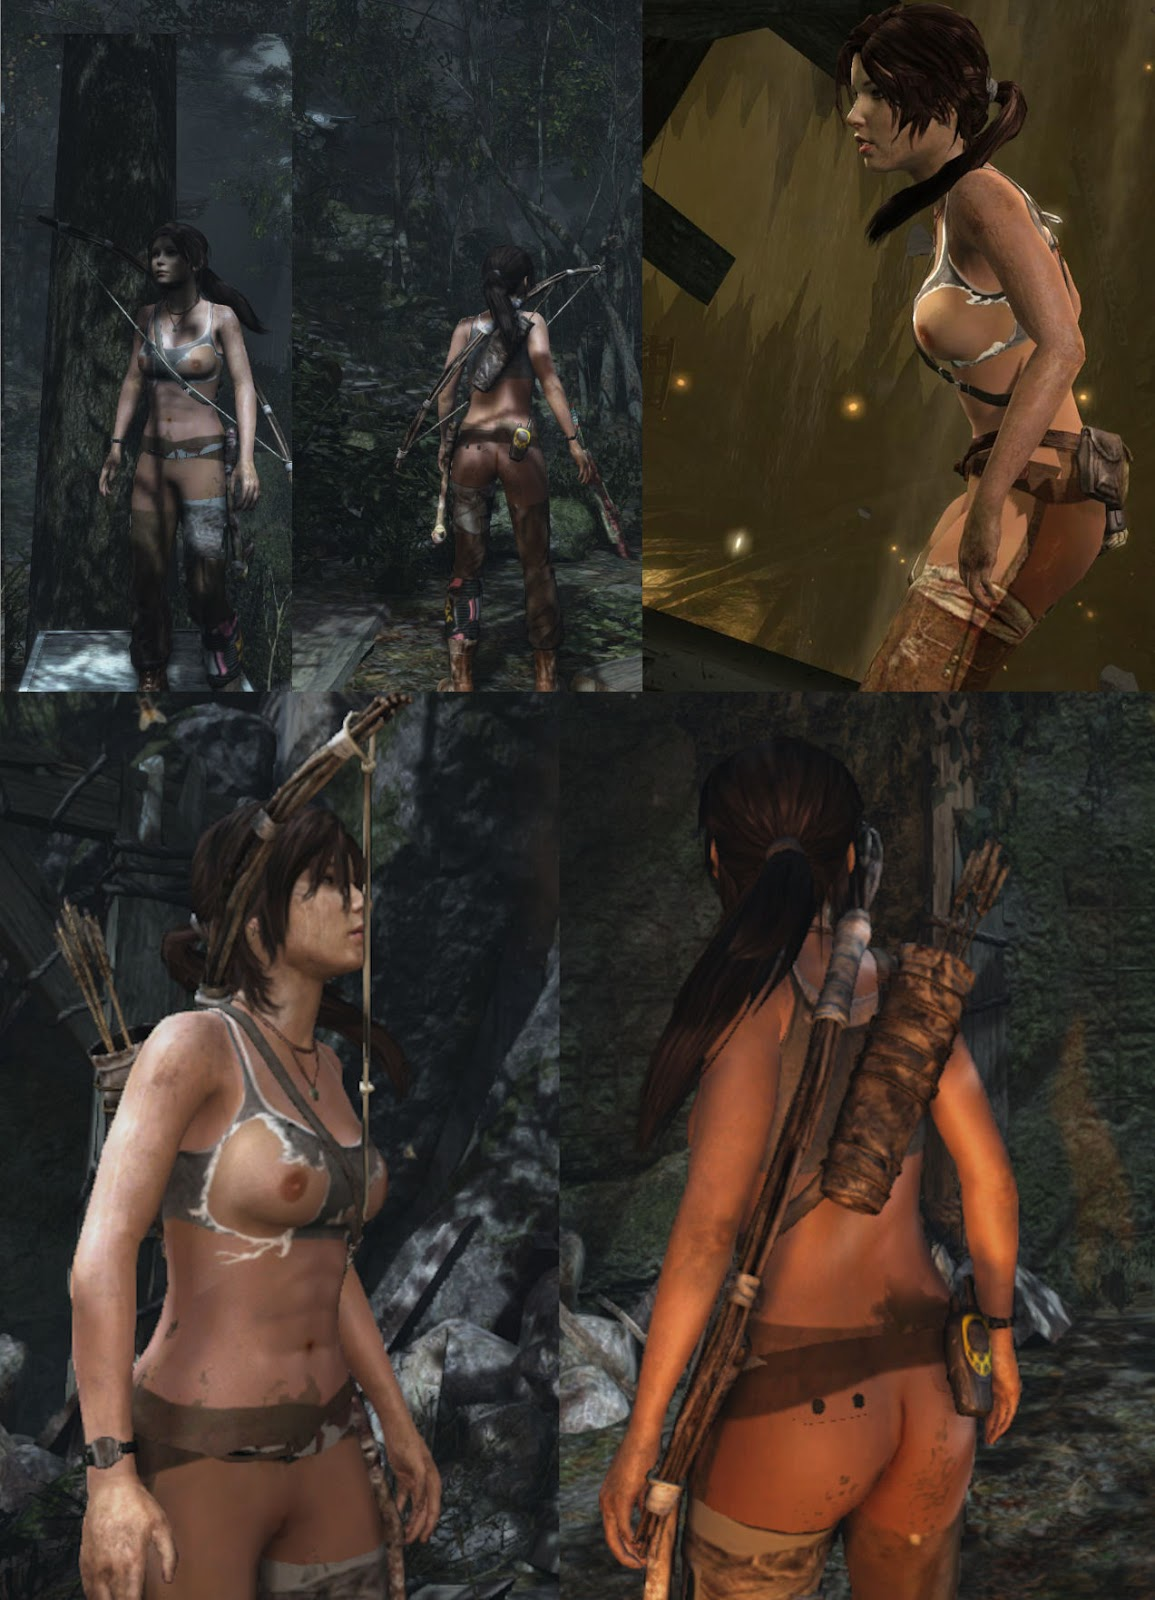 Tomb raider 2013 sex patch hentia images